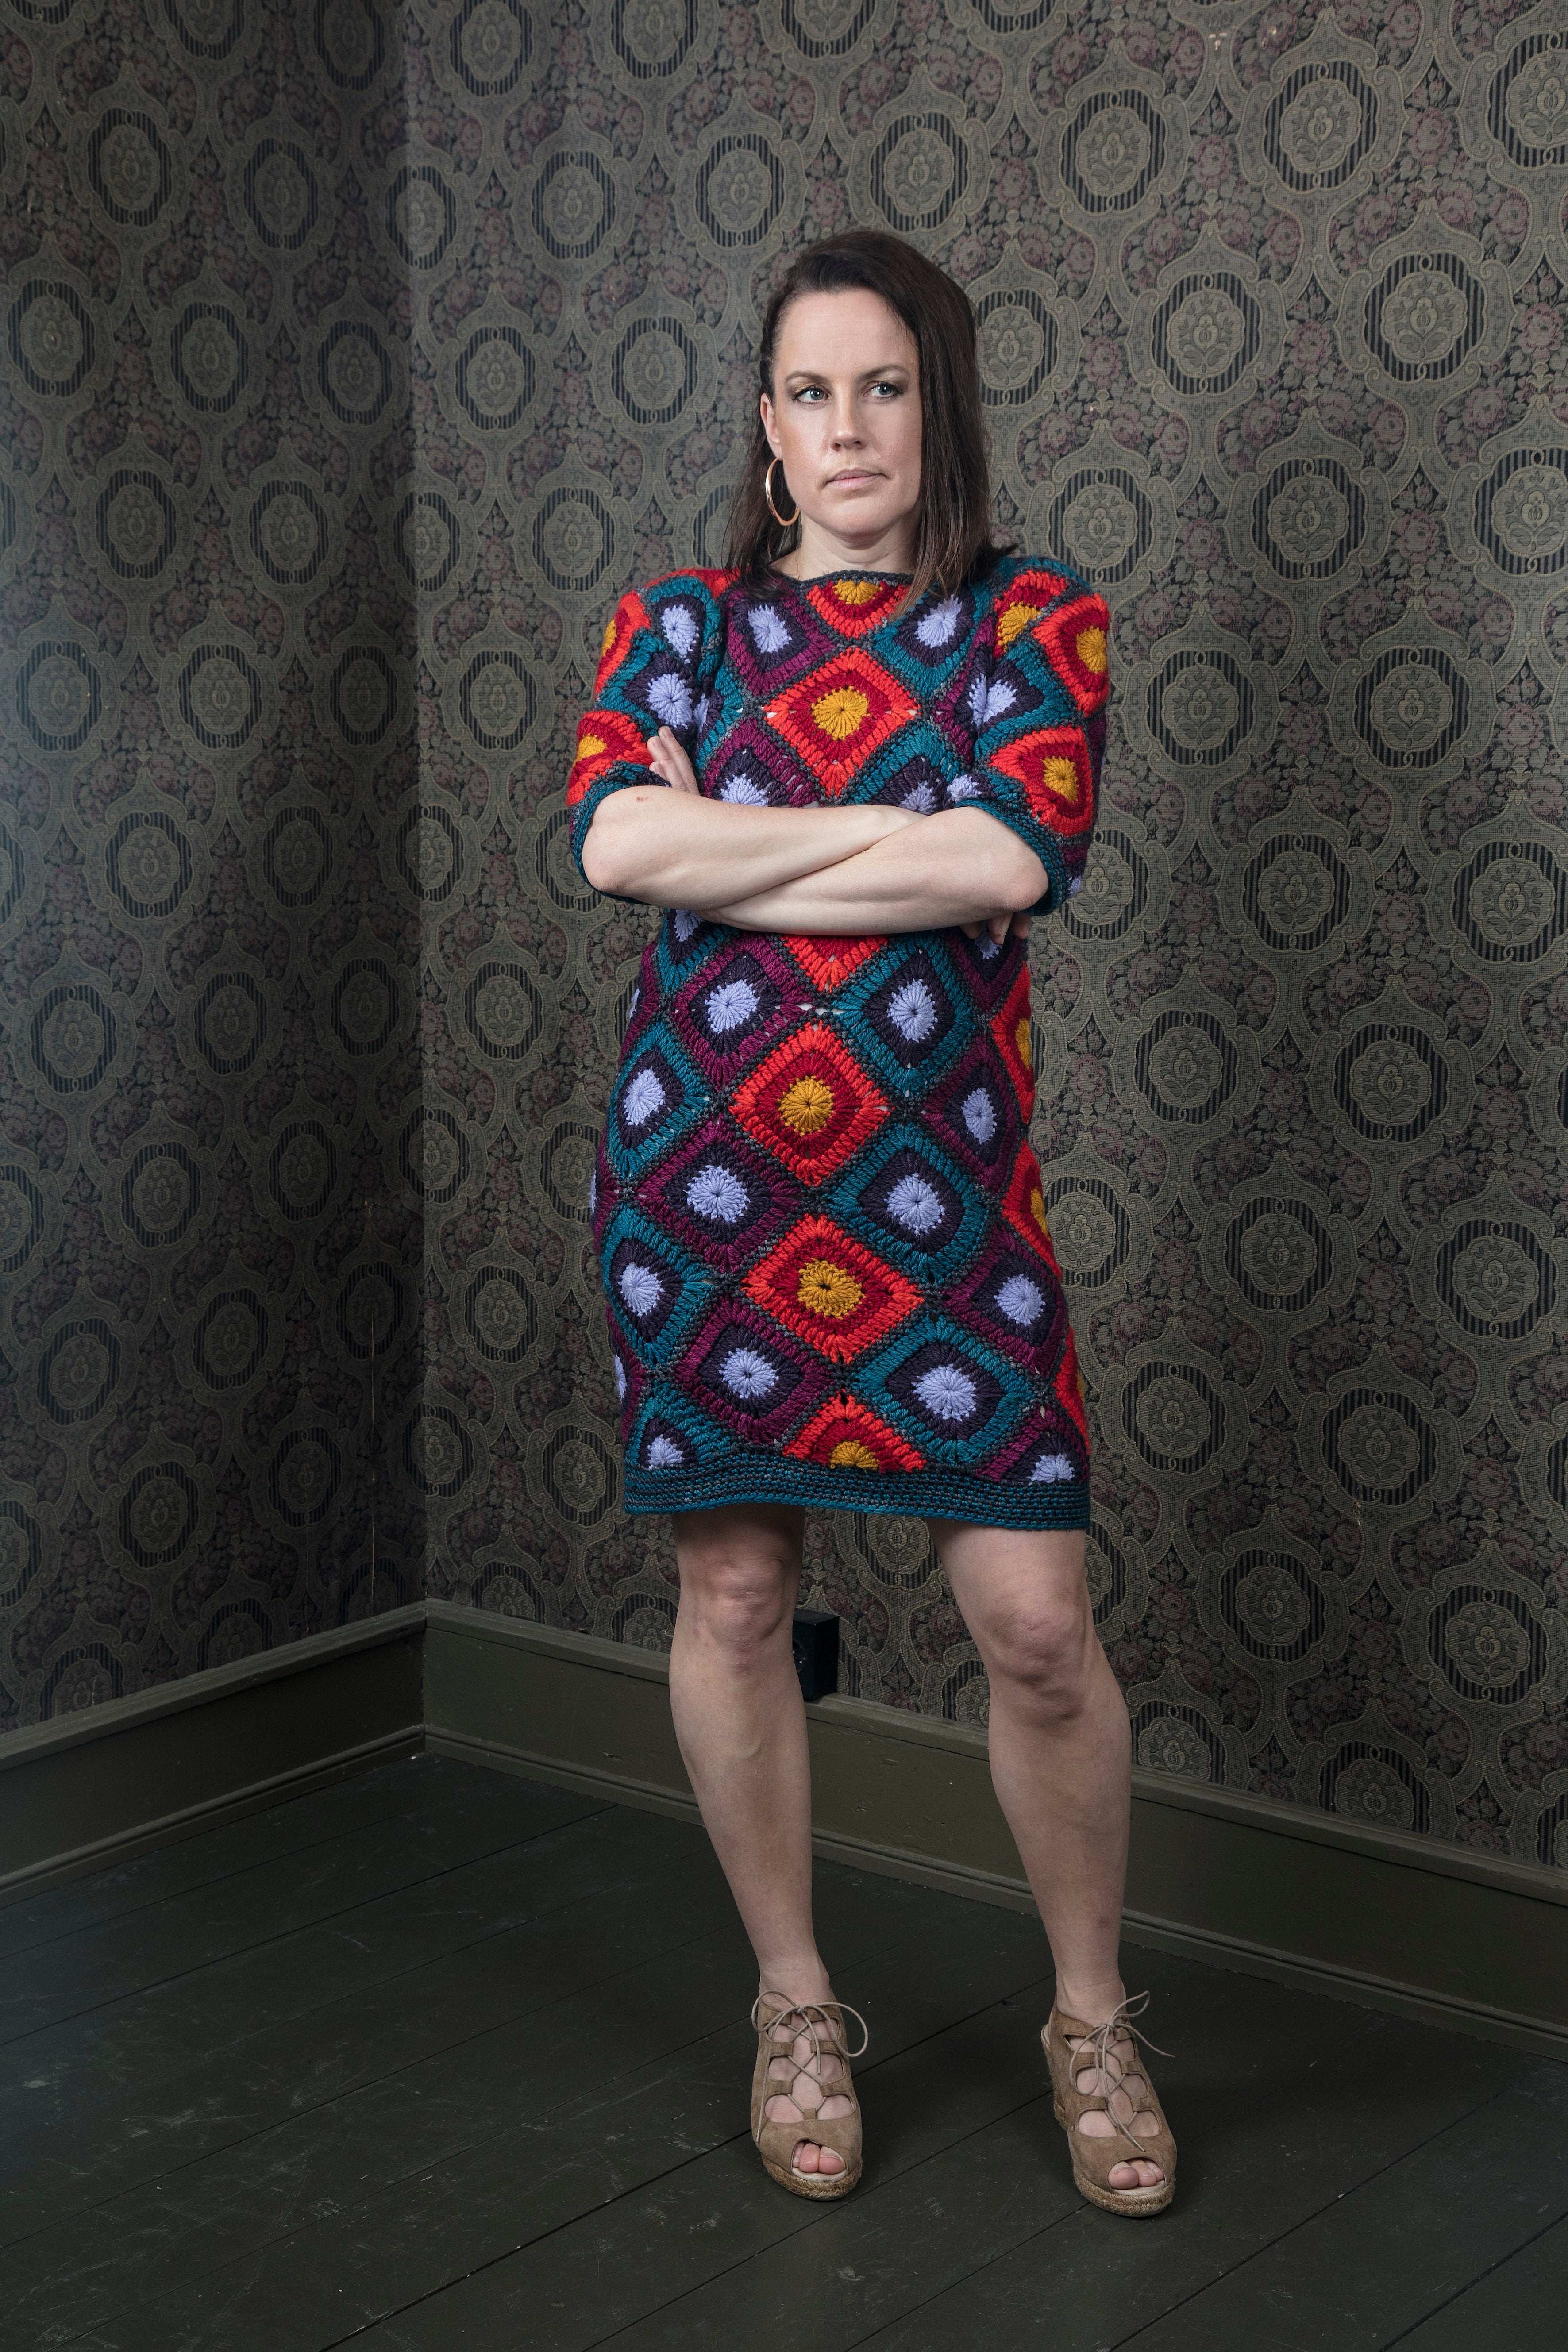 The Graphic Pattern dress - multicolored